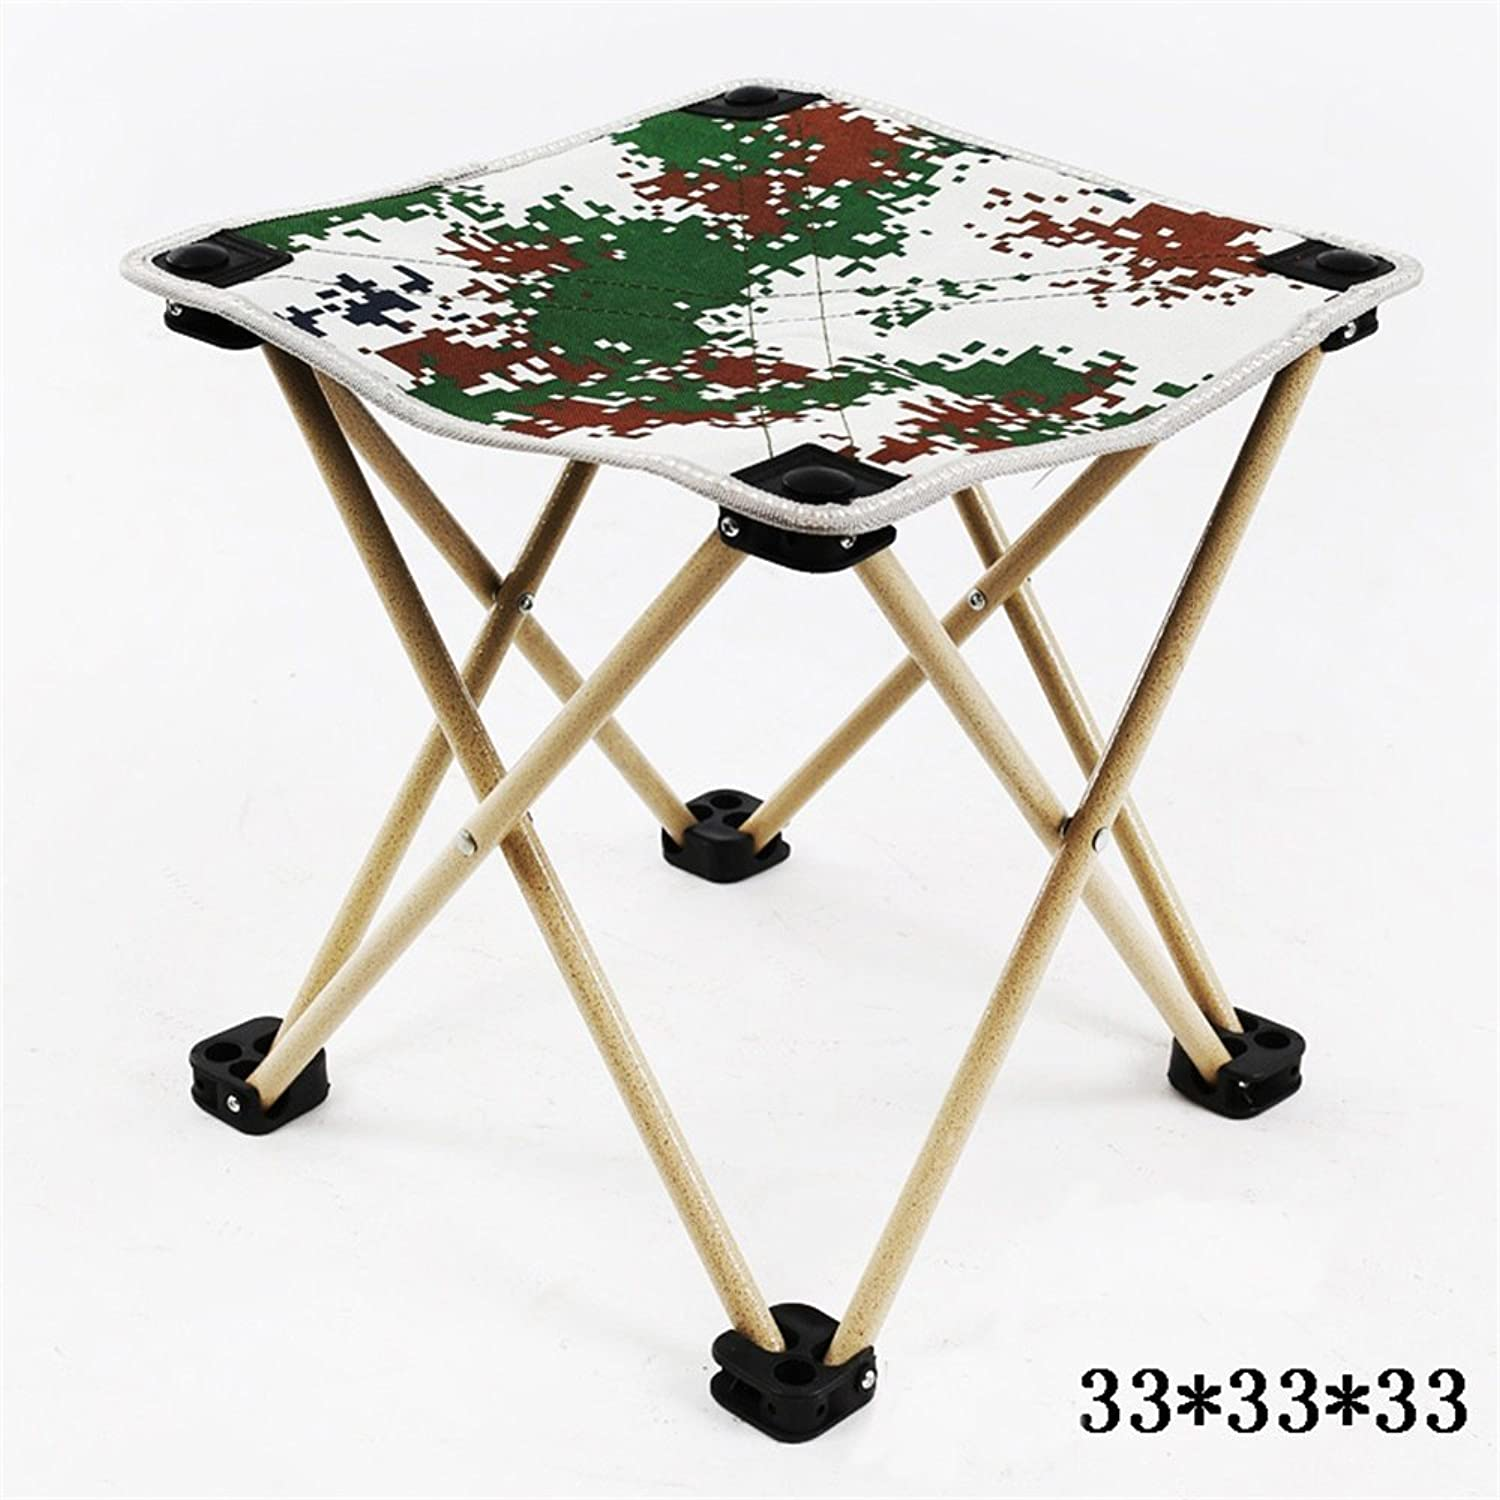 SMC Stool Simple Modern Stainless Steel Folding Stool Portable Camping Beach Fishing Stool Stool Painting Chair Mazar Folding Small Chair Stool shoes Stool (color   Camouflage)